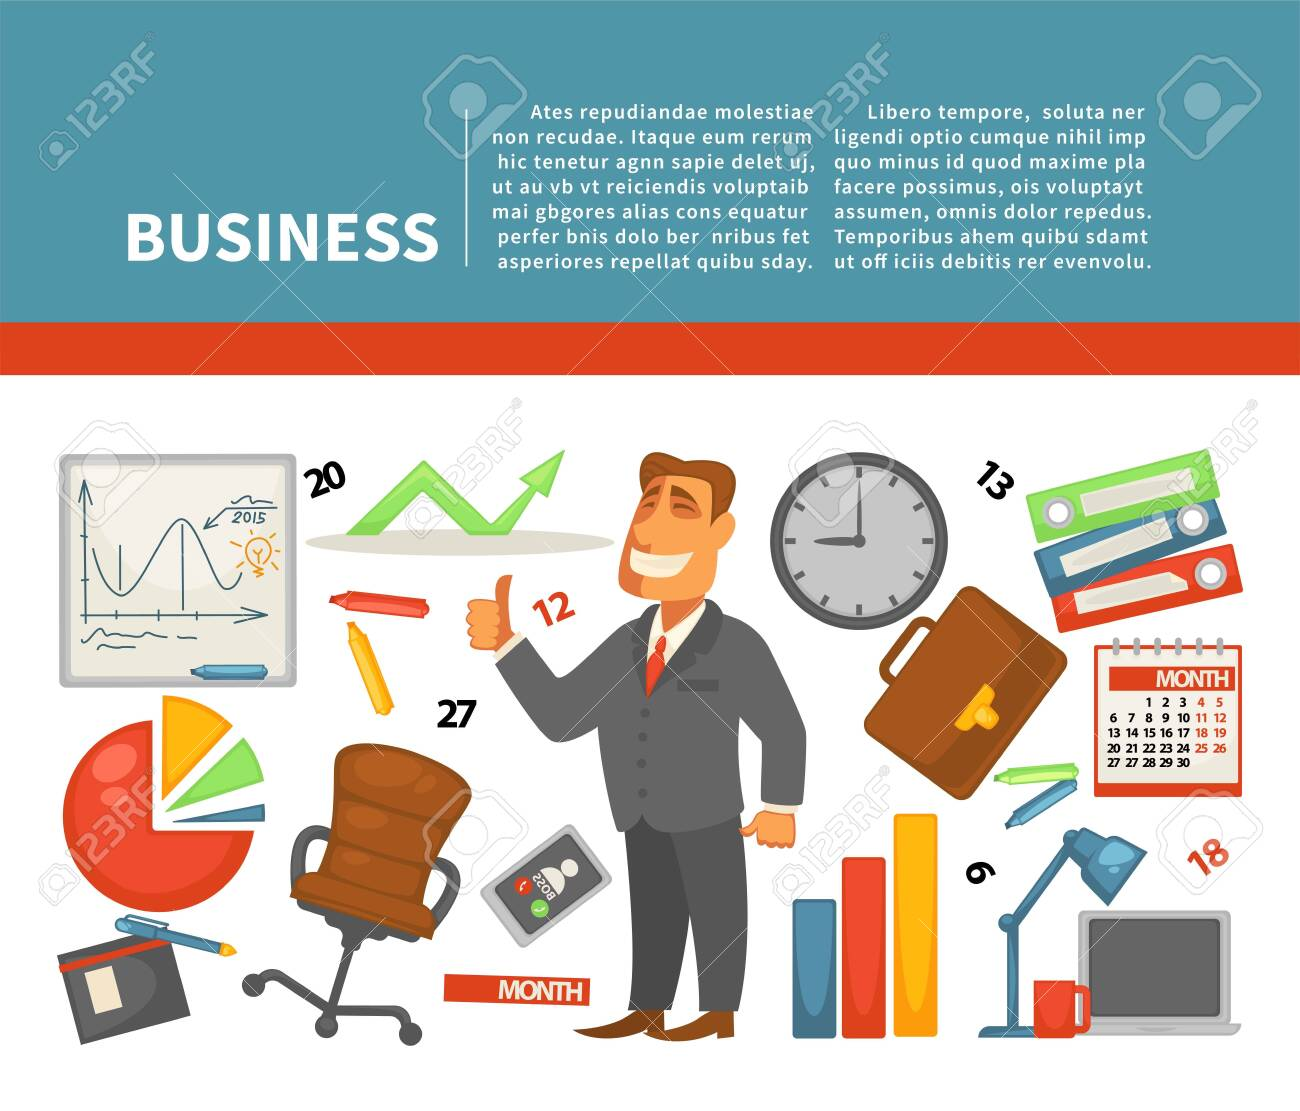 Business Equipment Businessman And Work Financial Graphics Or